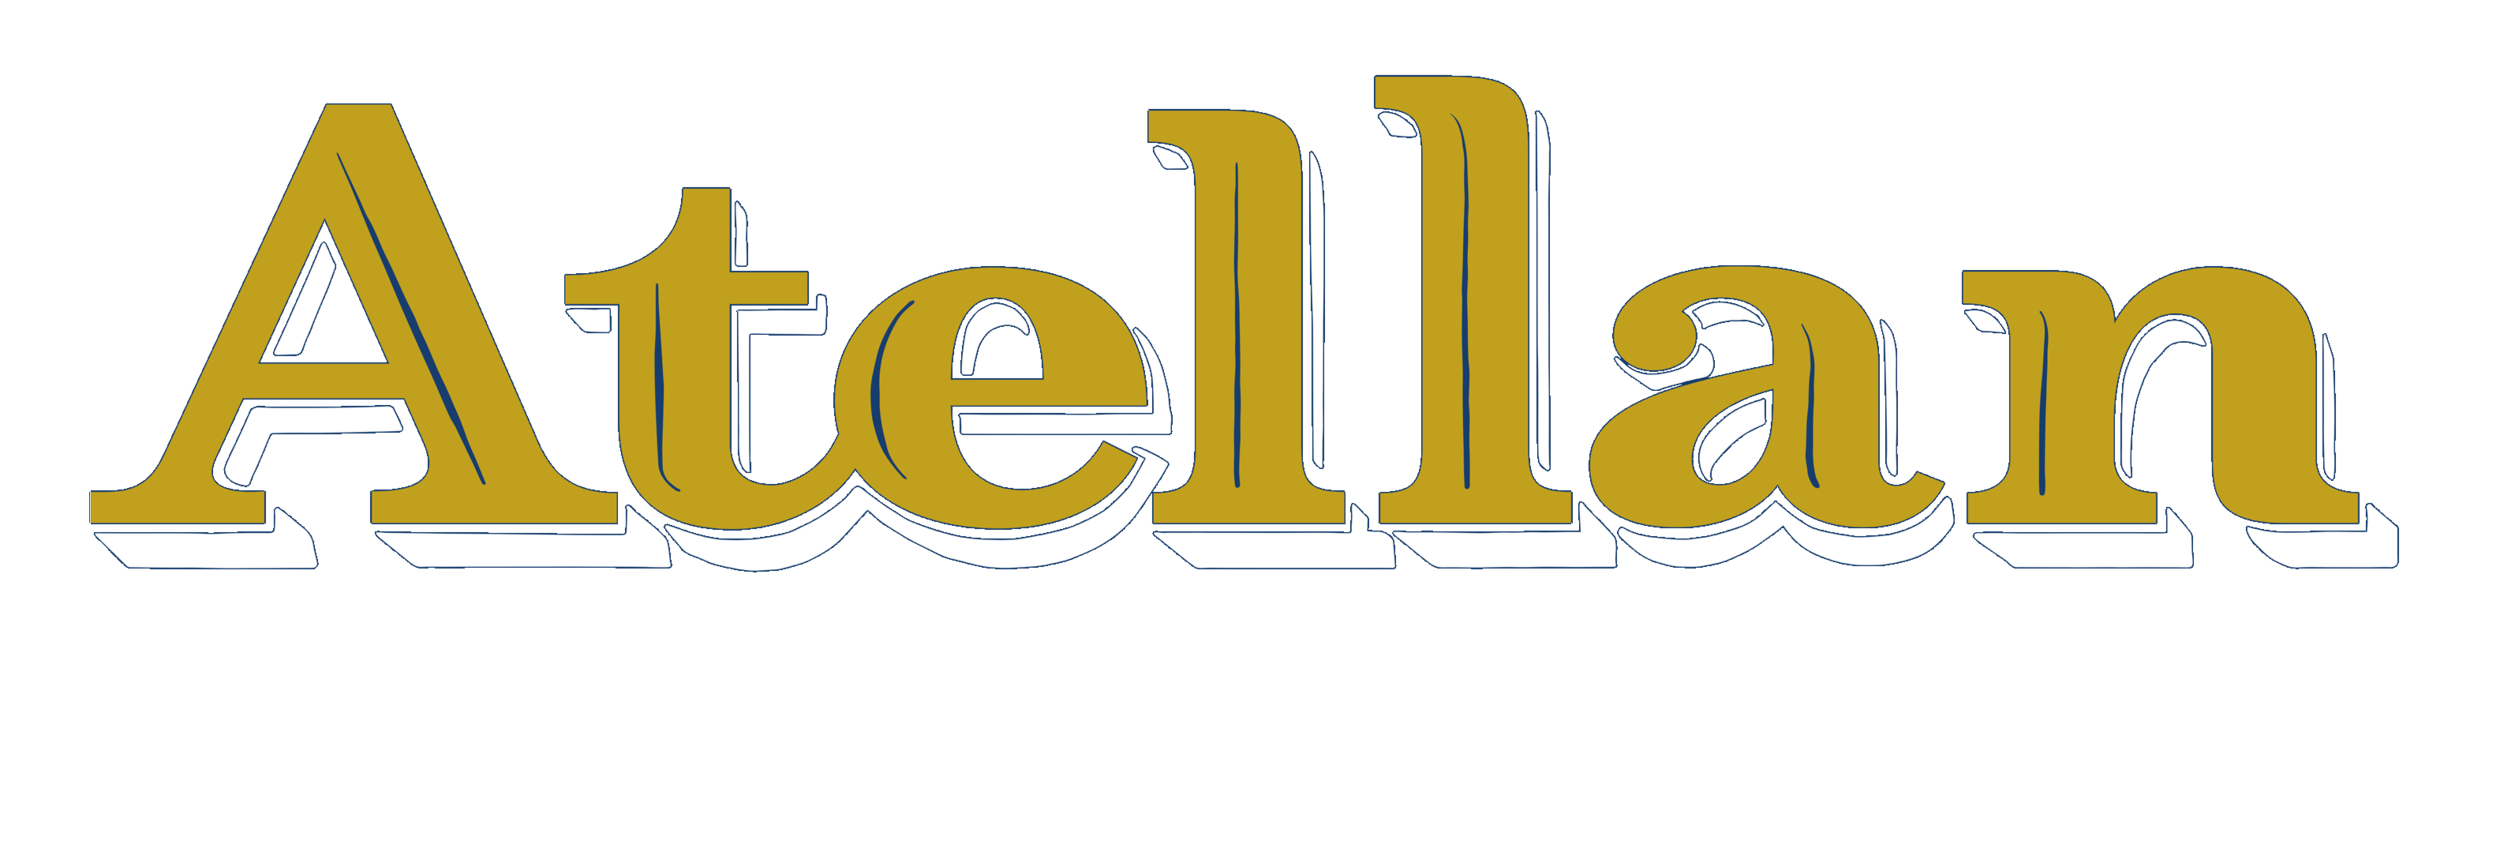 atellan-logo-for-website-144dpi-transparent.png